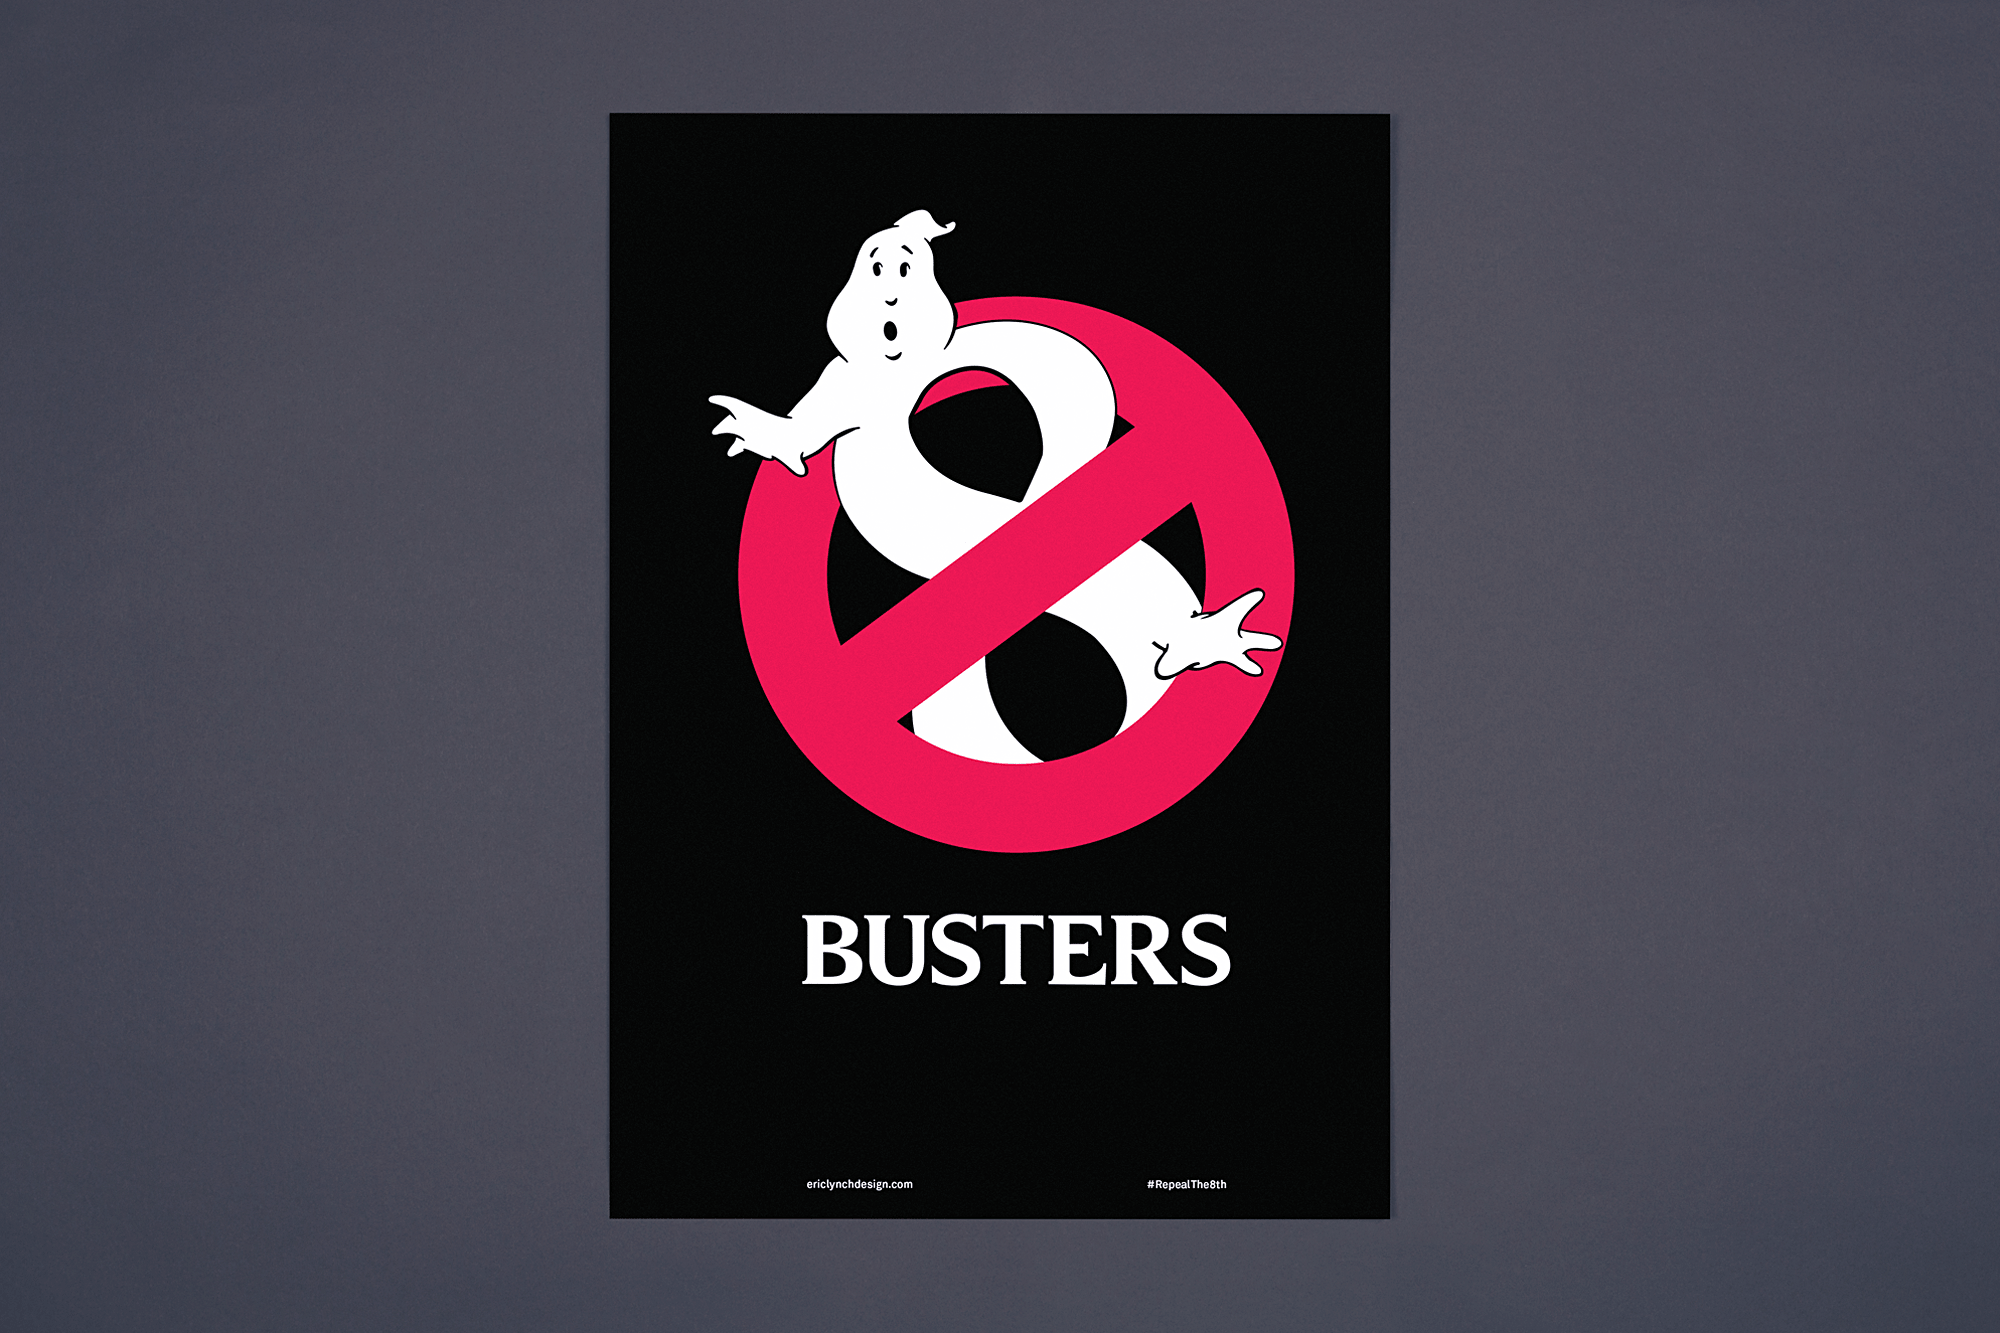 Cover image: 8thBusters